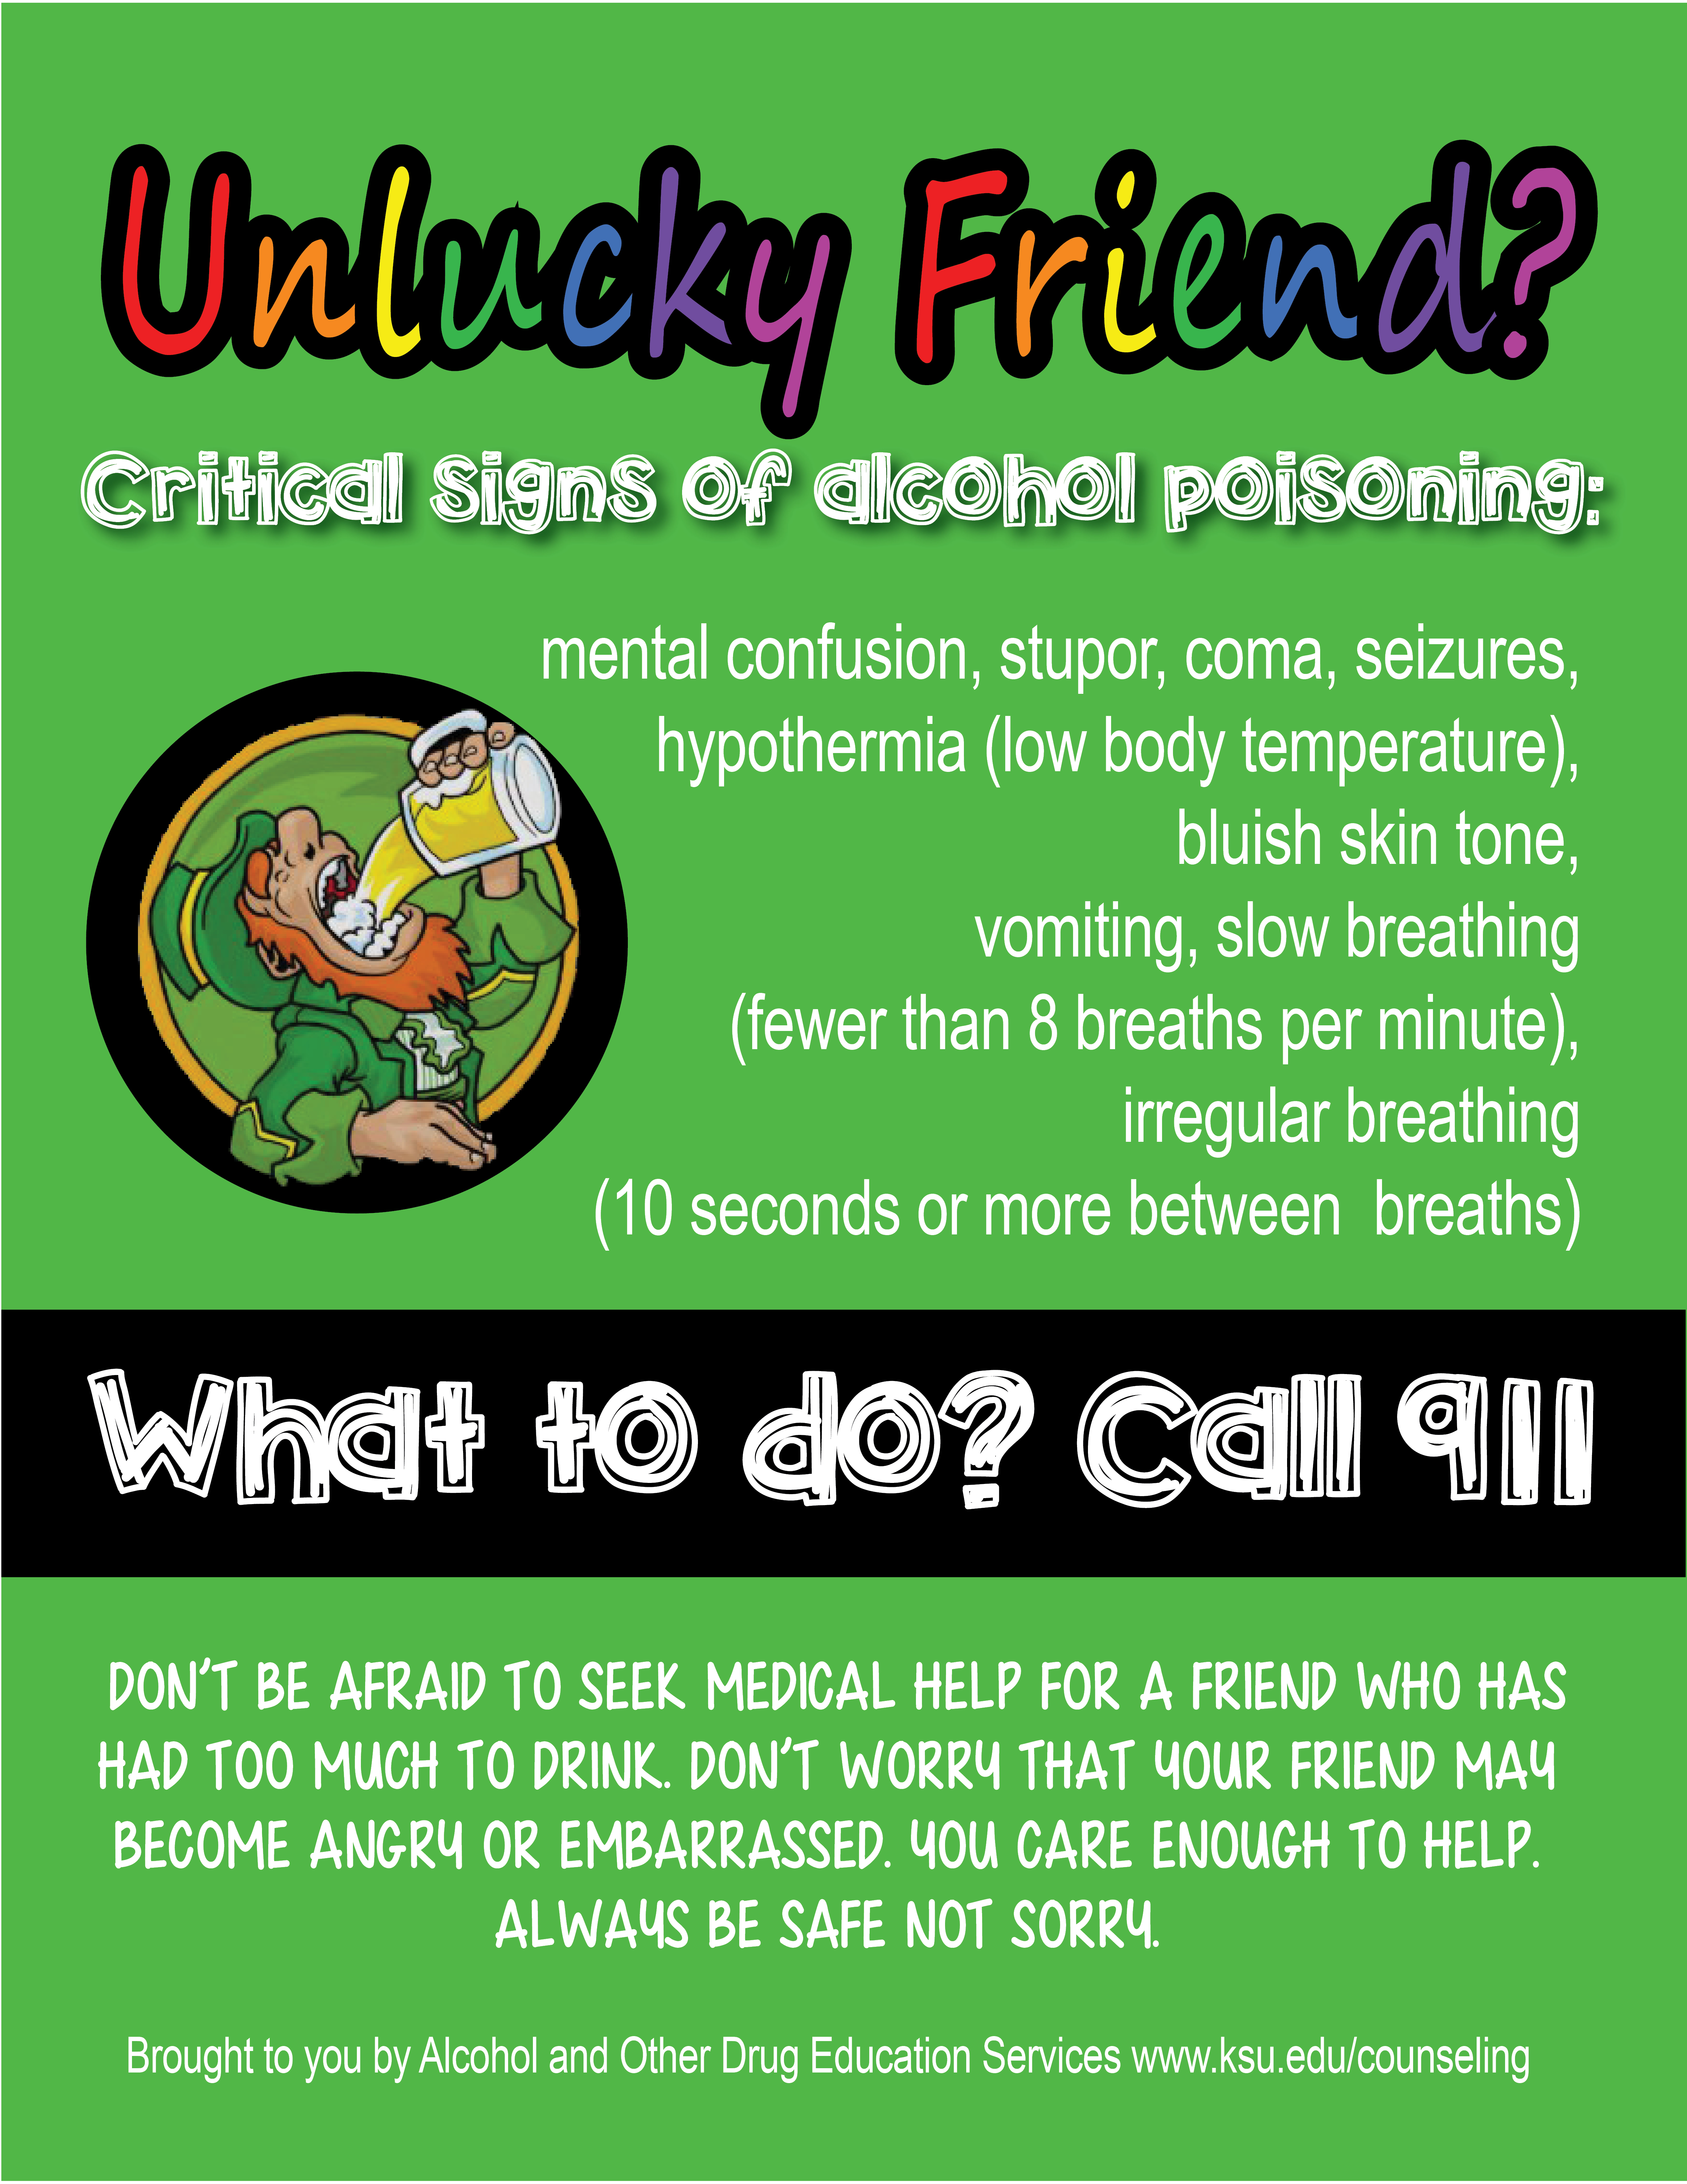 Critical Signs of Alcohol Poisoning